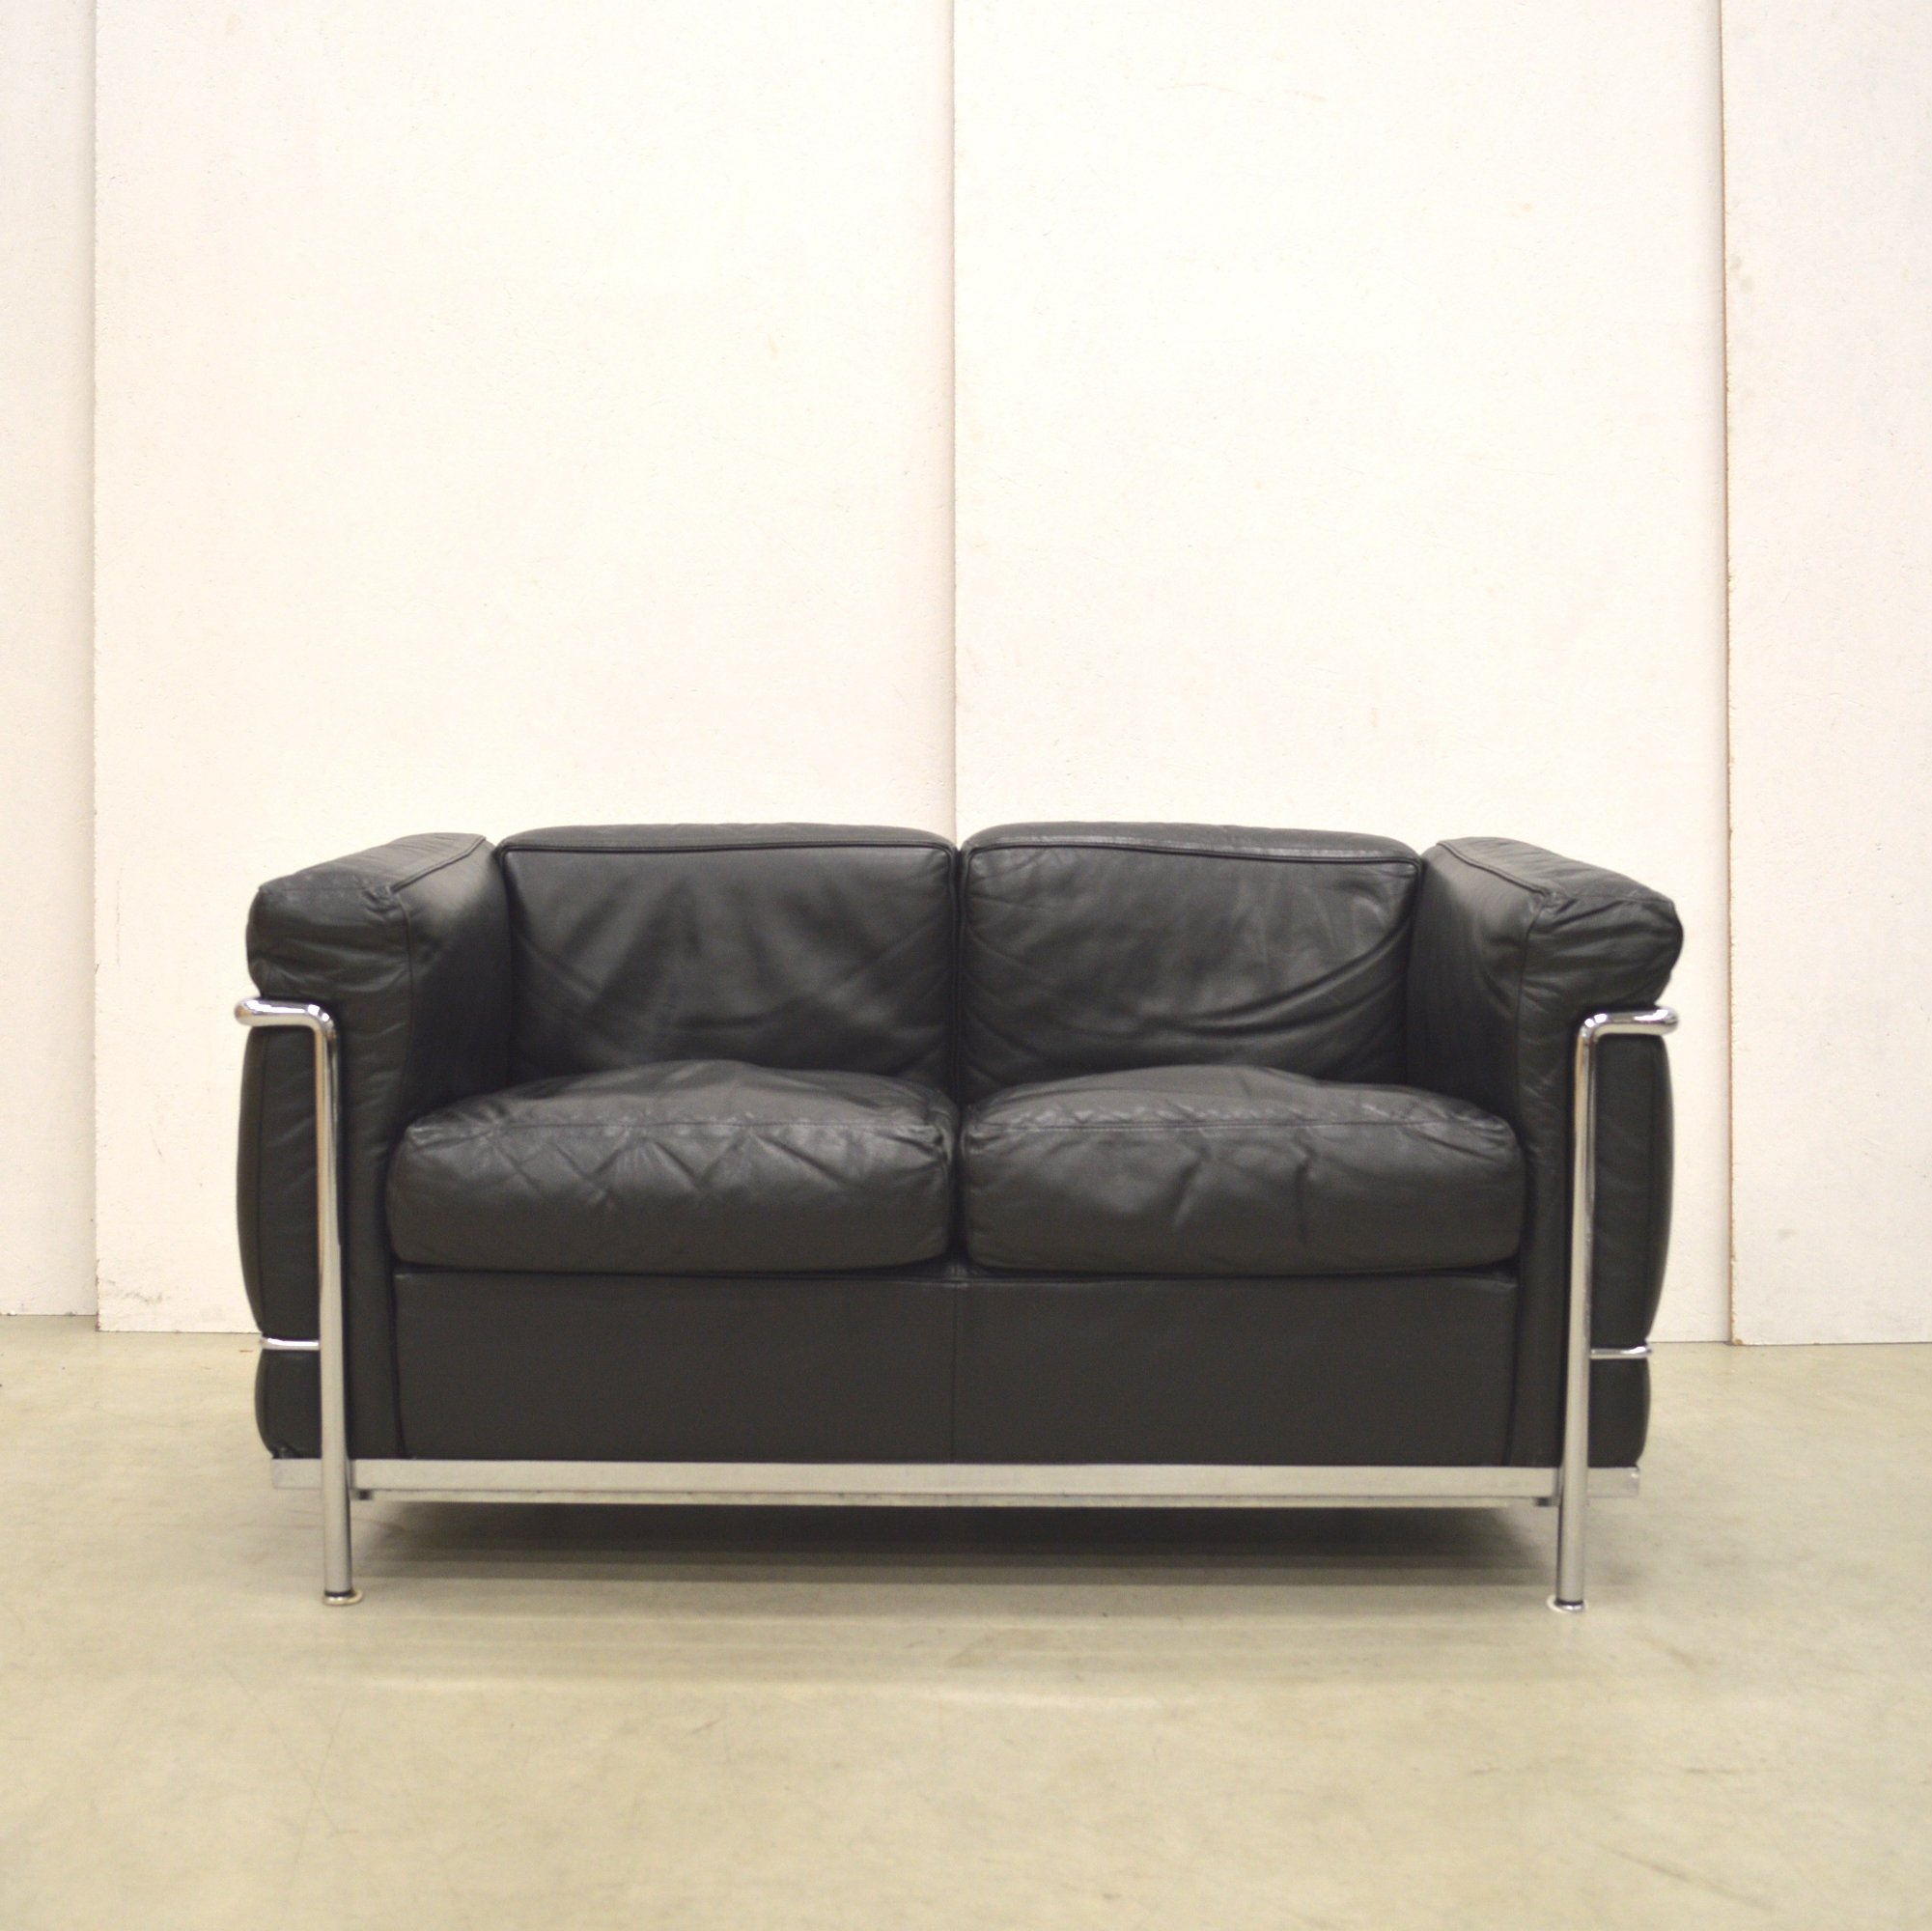 Sofa Le Corbusier Lc2 Sofa By Le Corbusier For Cassina, 1990s | #74382